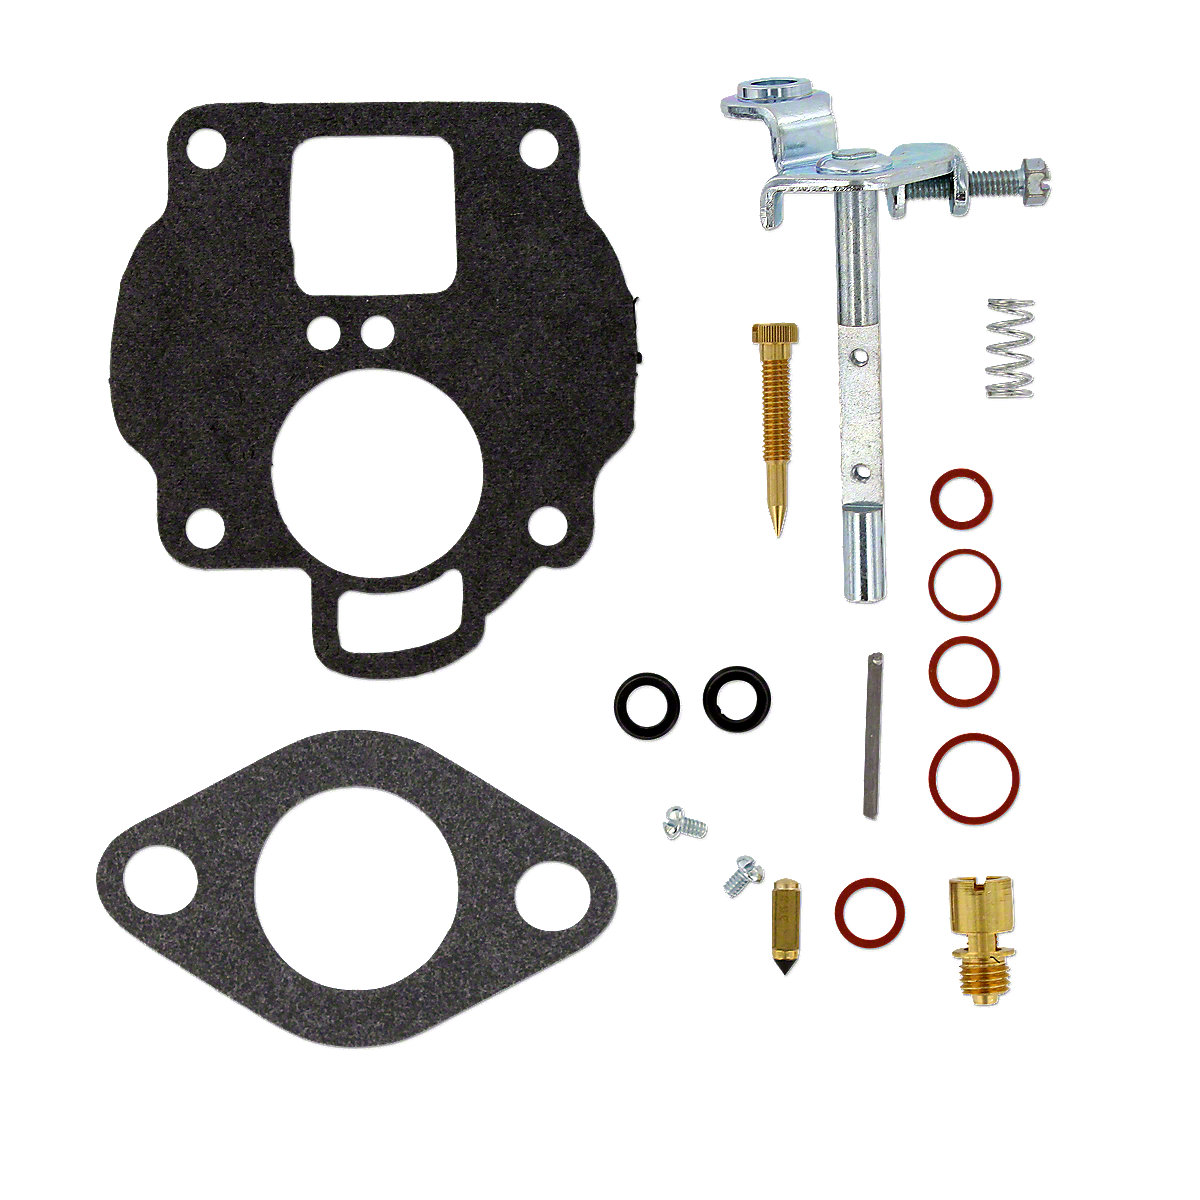 ABC231 Basic Carburetor Repair Kit (Carter)